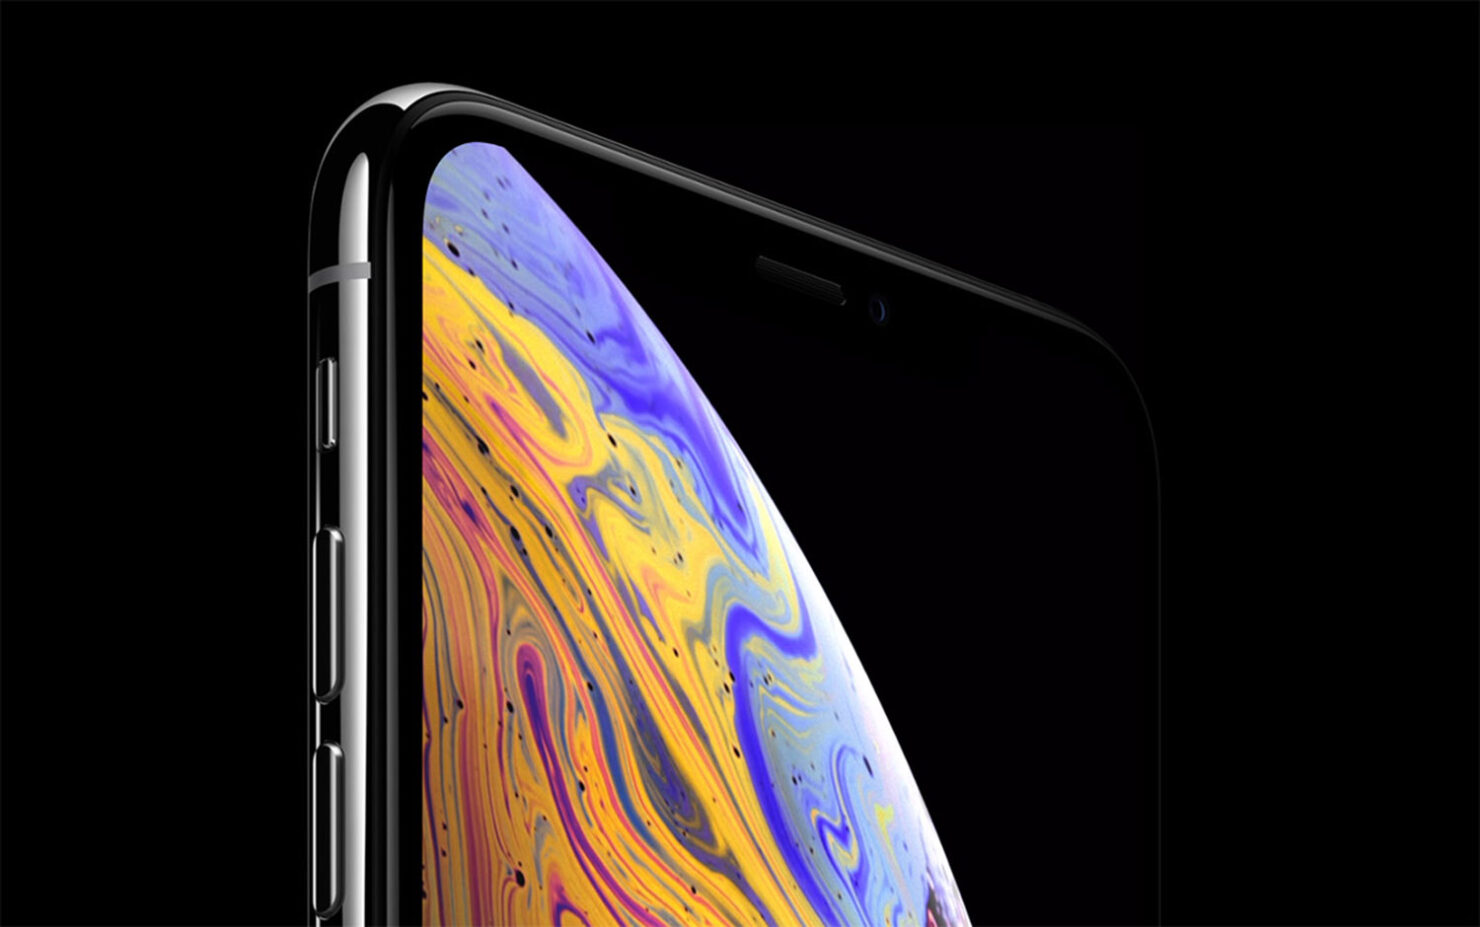 iPhone value for your older model could decrease when the new iPhone 11 range arrives